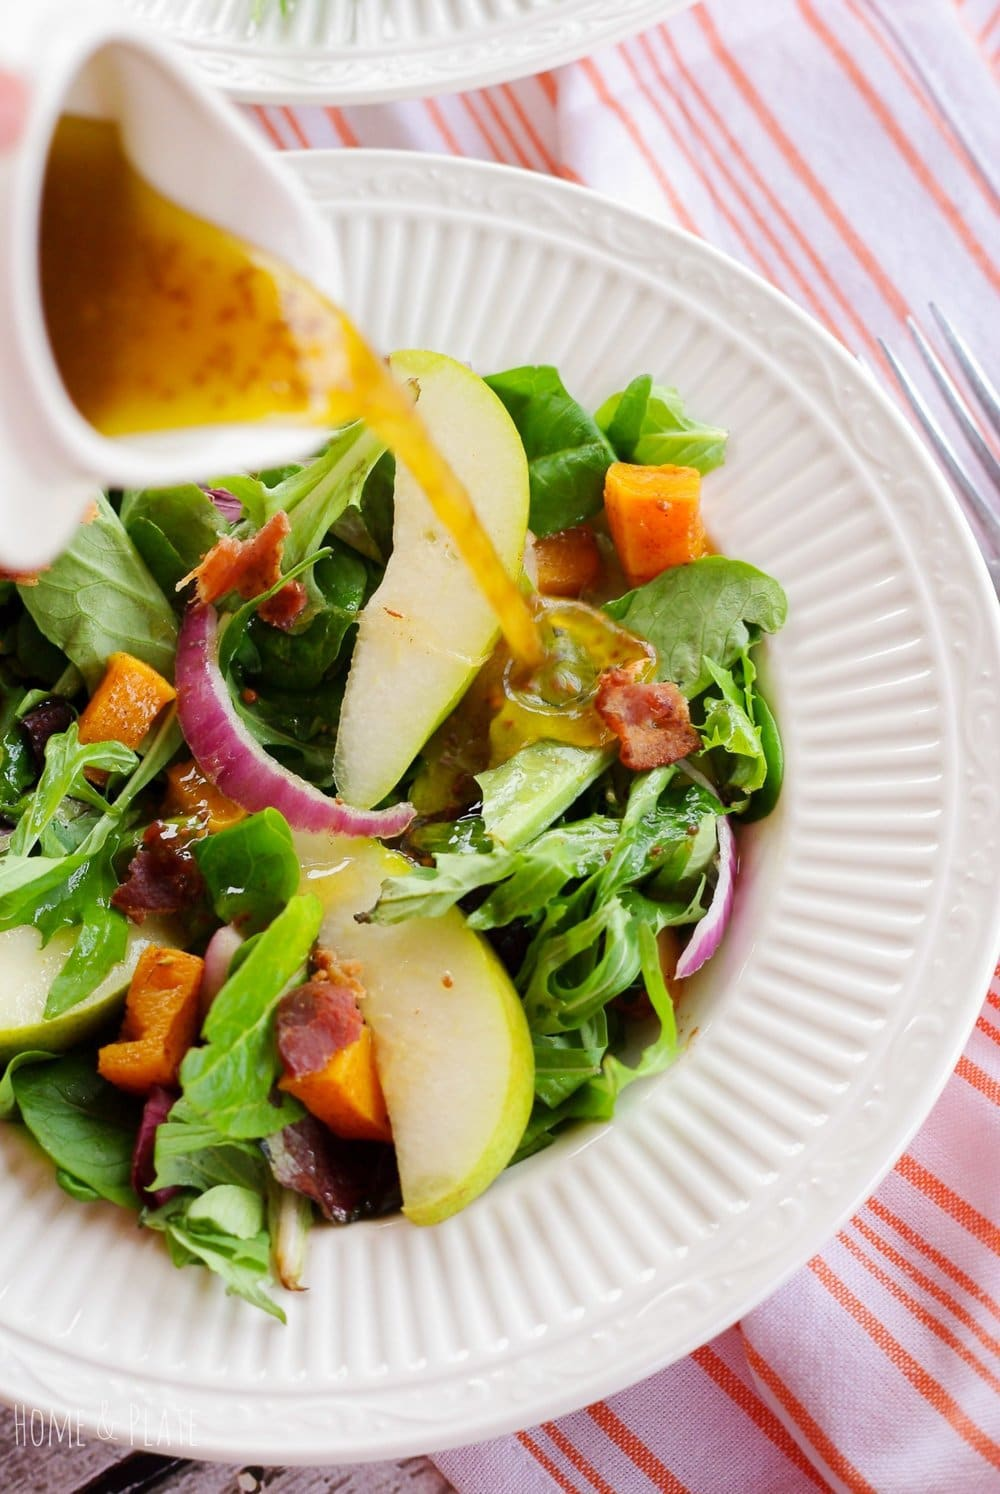 Pear and Butternut Squash Salad with a Maple Balsamic Vinaigrette